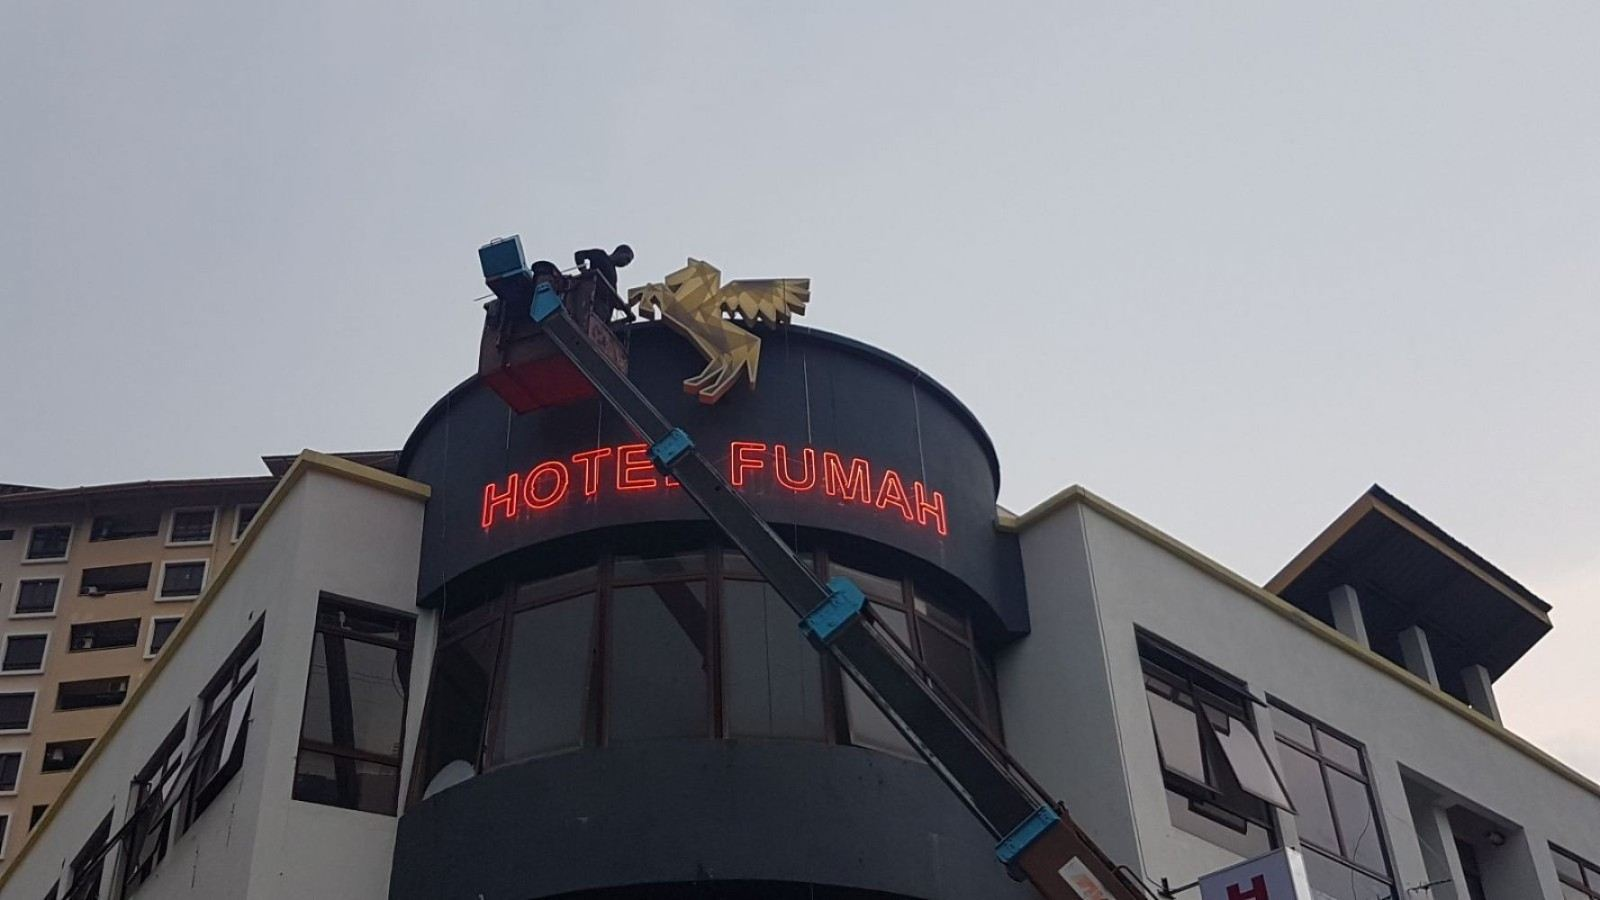 Hotel Fumah Neon Sign